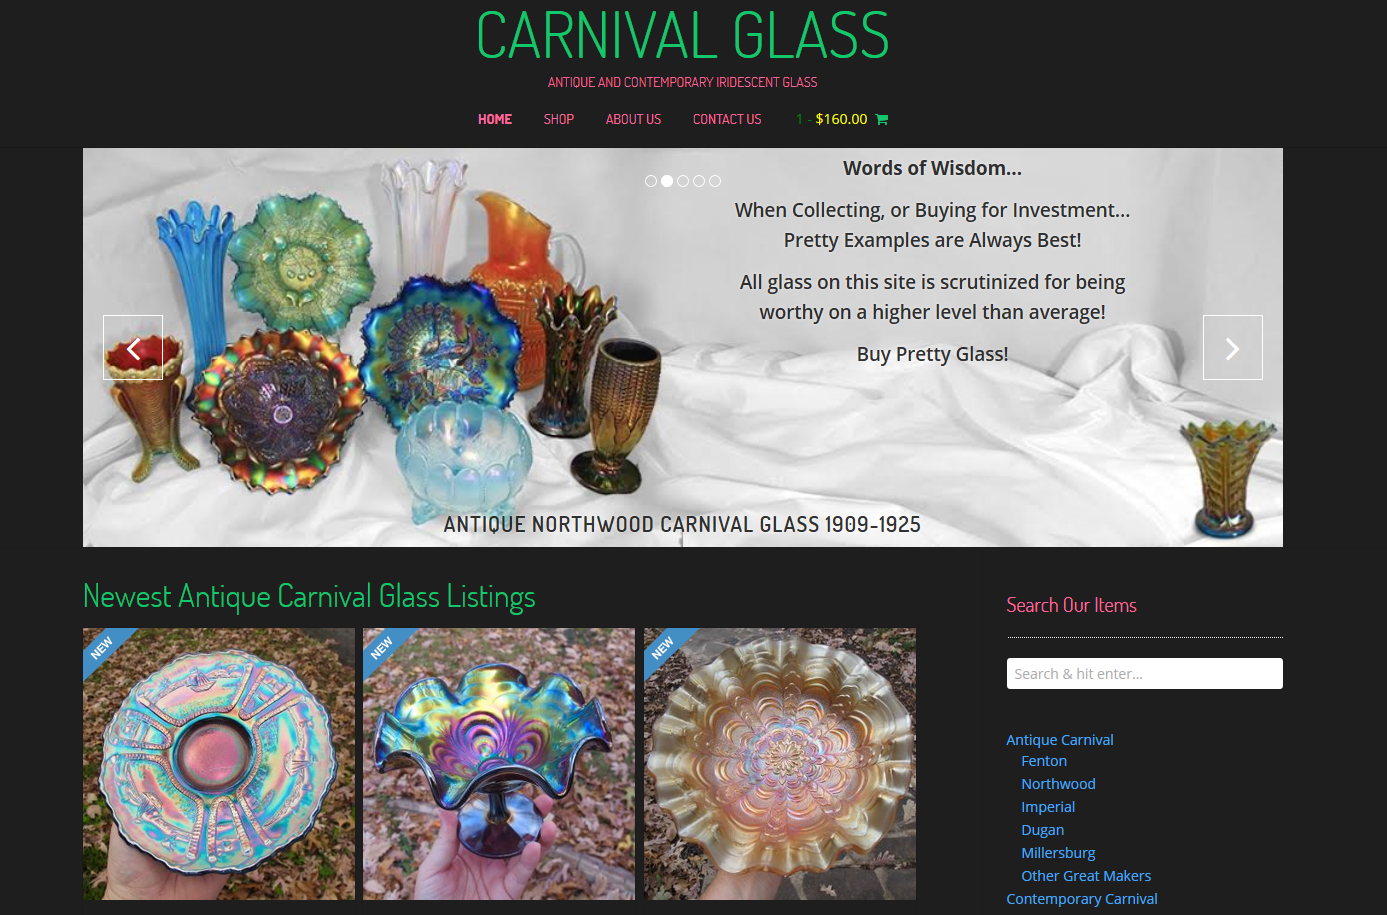 Site Launch: CarnivalGlass.com